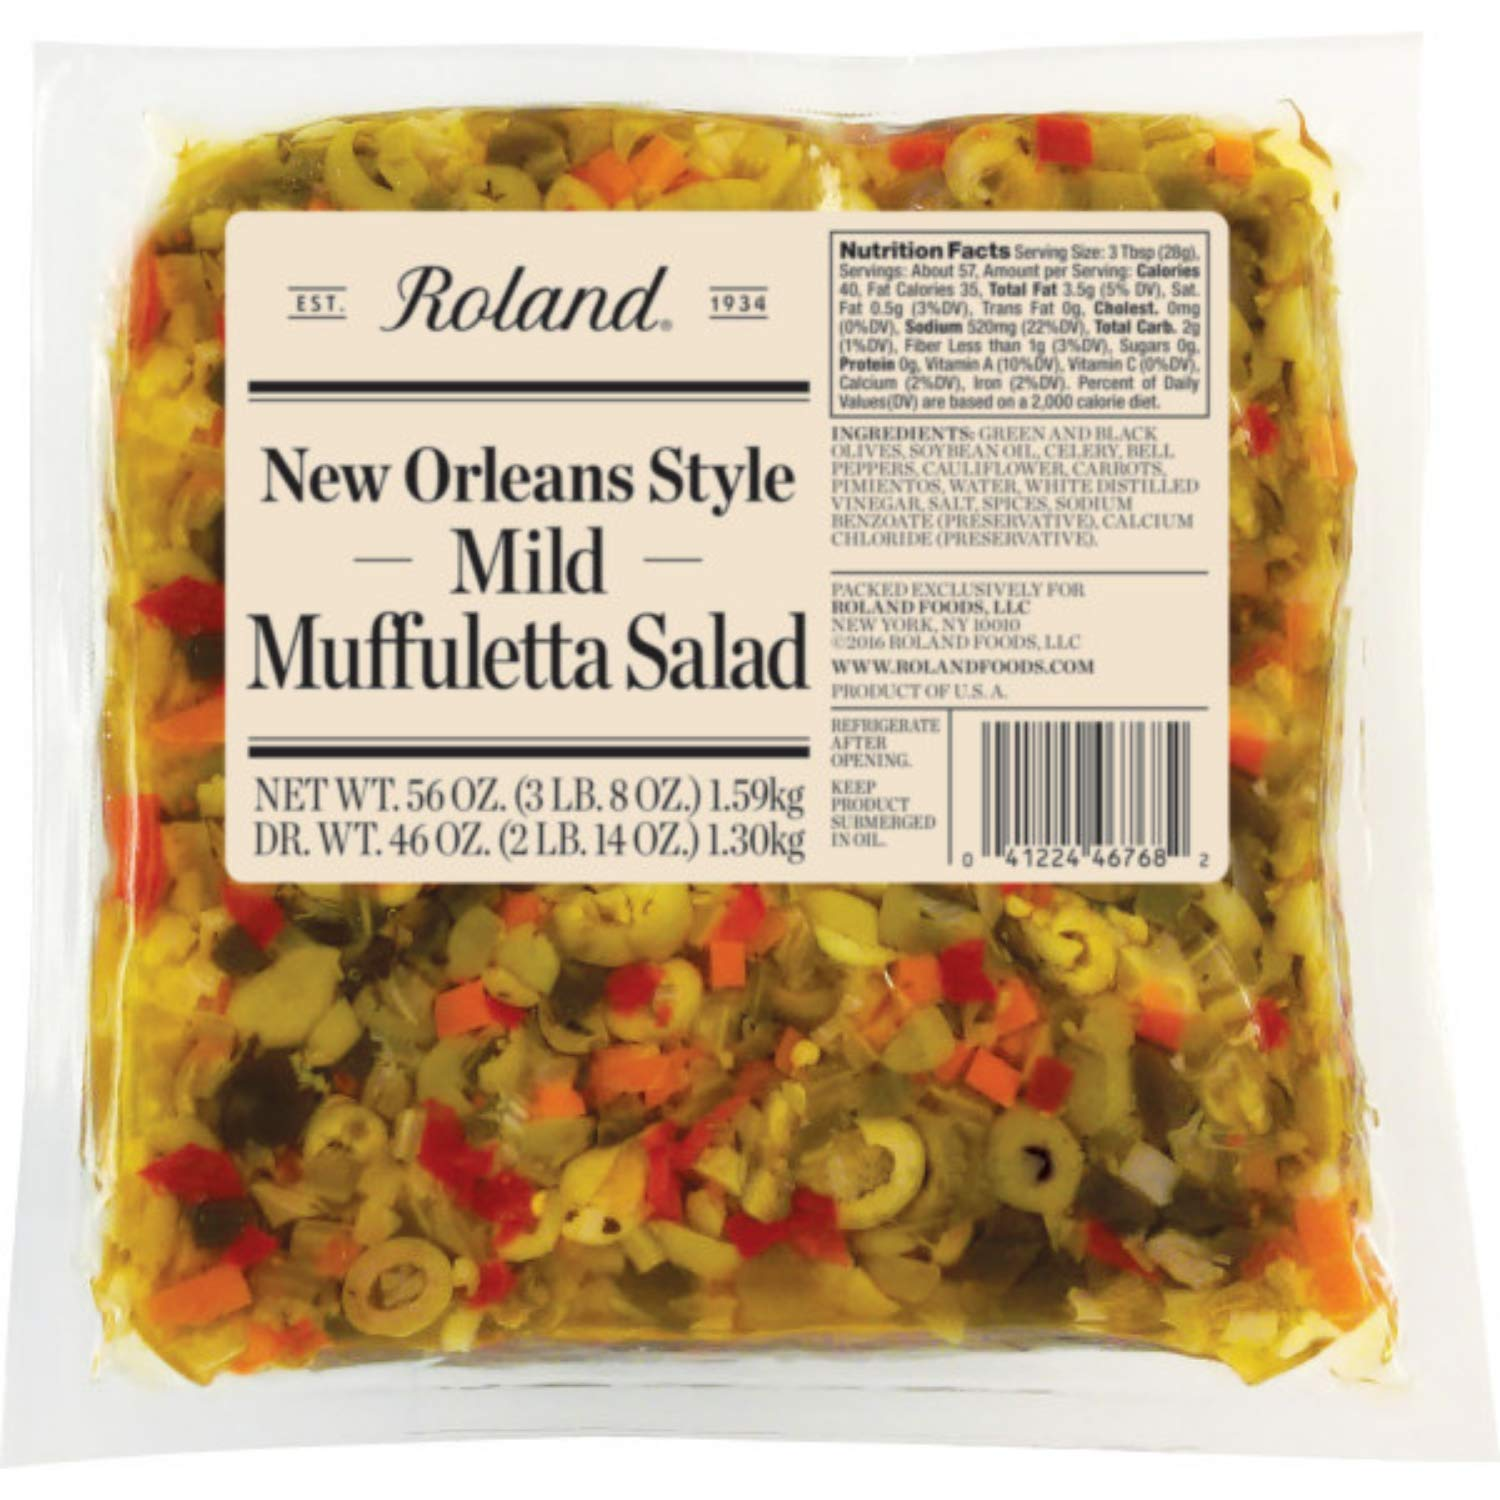 Roland Foods New Orleans Style Mild Muffuletta Salad, Sourced in the USA, 56-Ounce Pouch